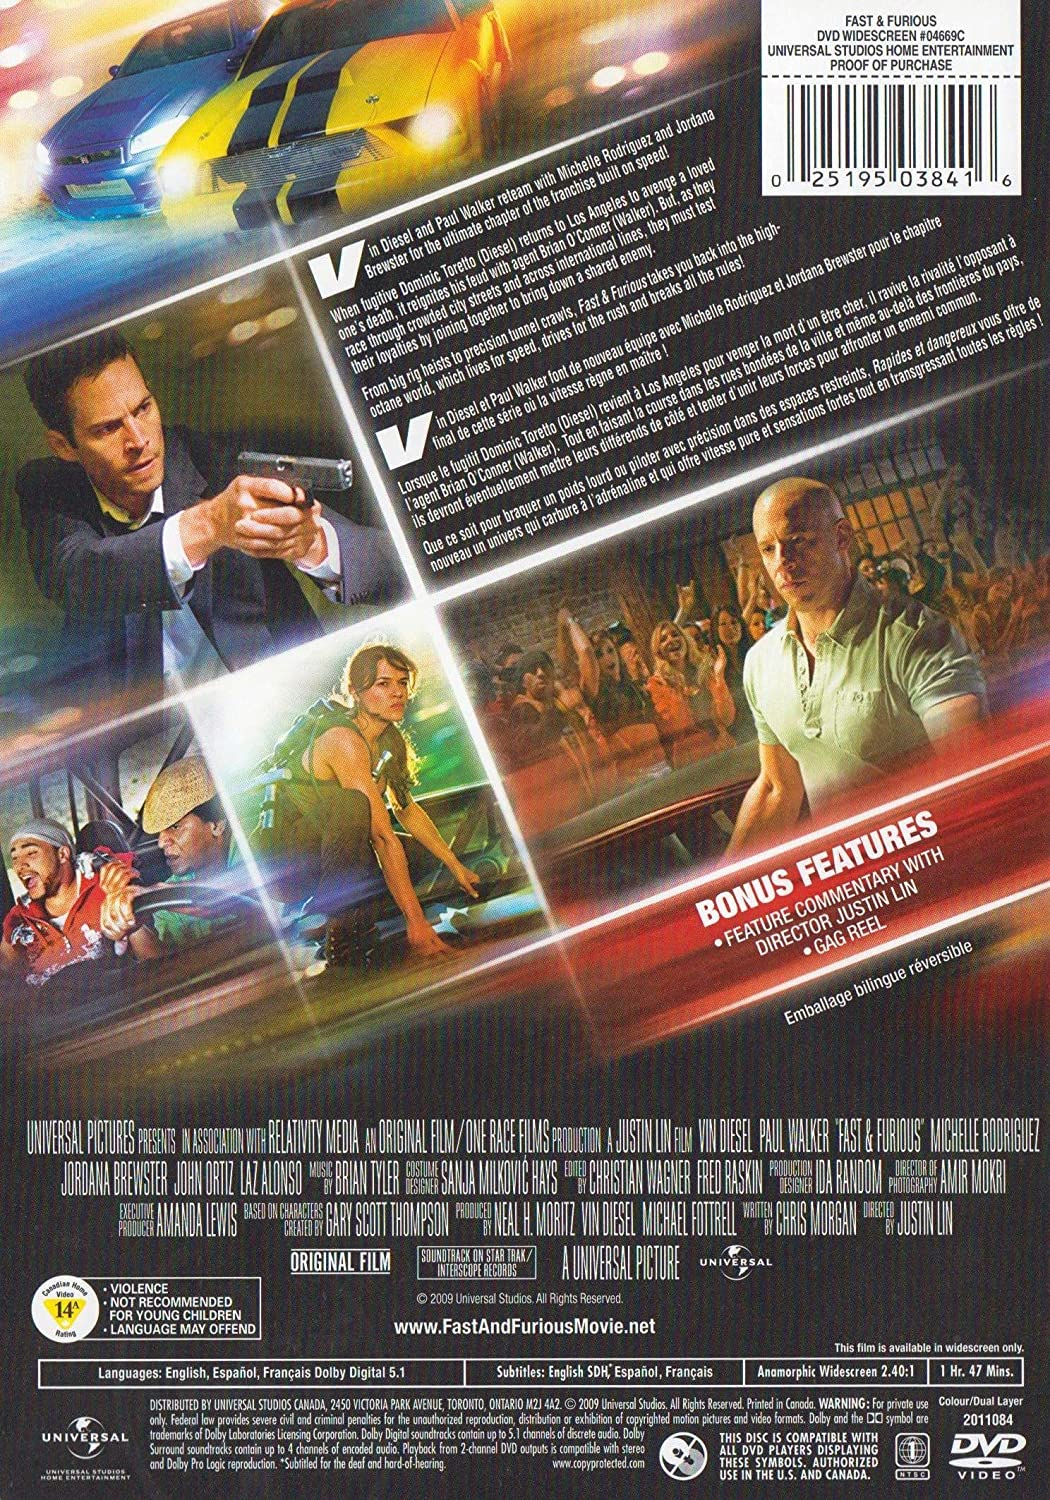 Amazon com: Fast & Furious: Vin Diesel, Paul Walker